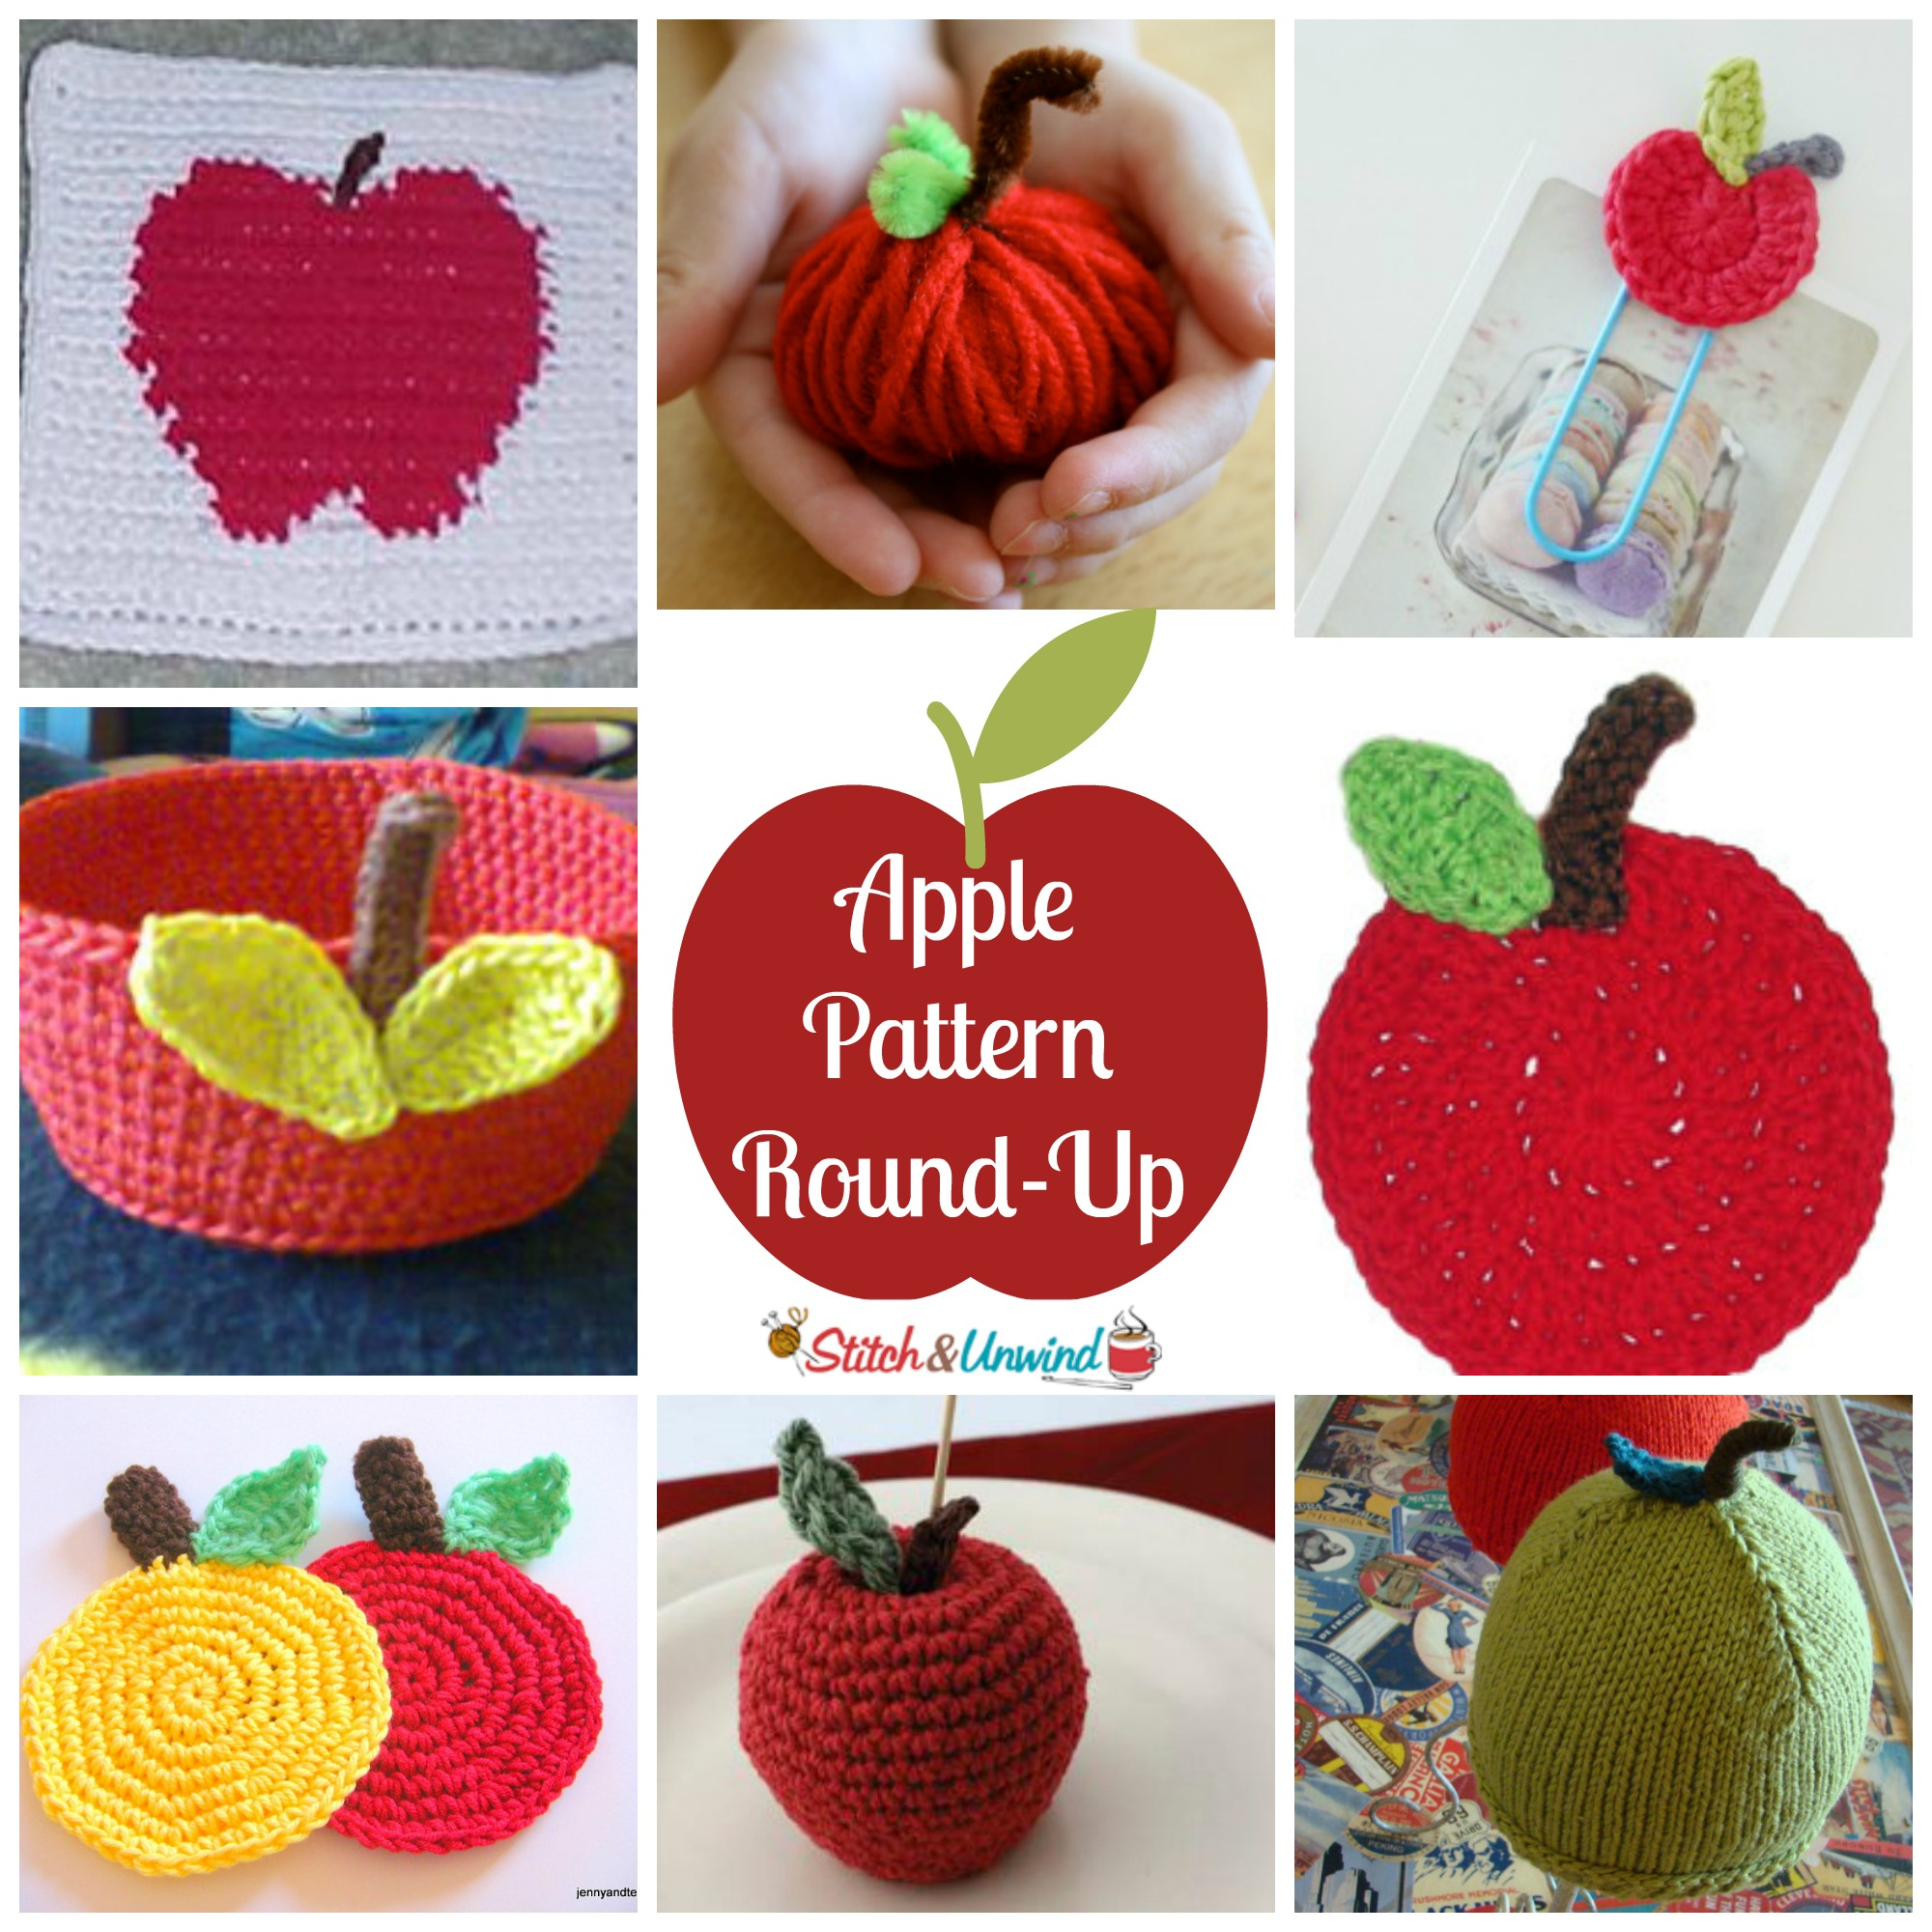 How About Them Apples? Crochet & Knitting Pattern Round-Up - Stitch ...